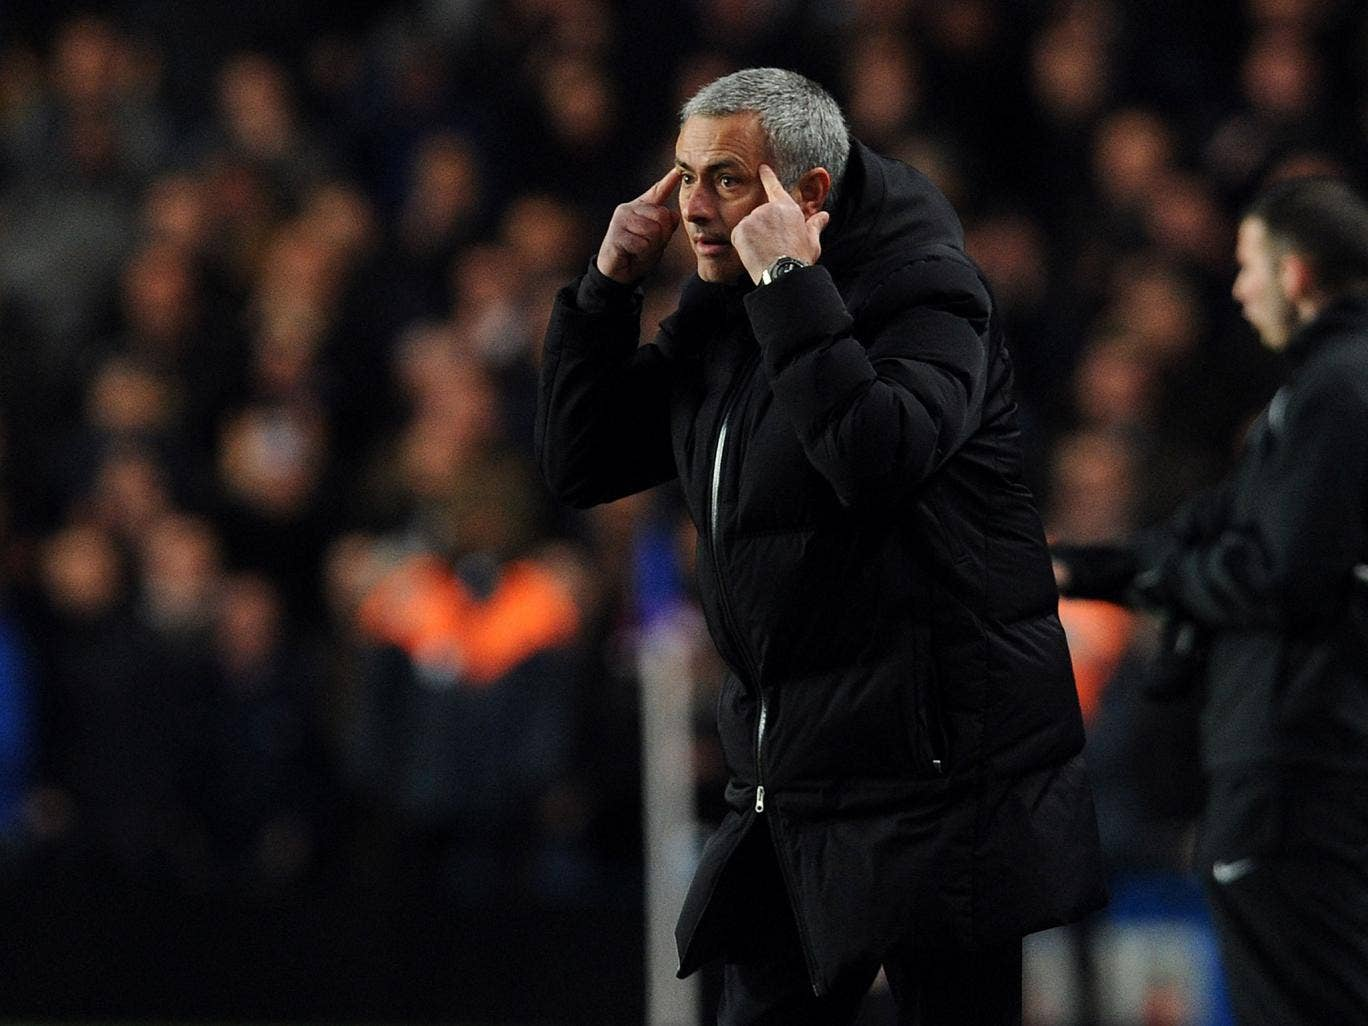 The Chelsea manager, Jose Mourinho, may have ulterior motives in singing the praises of Manchester City